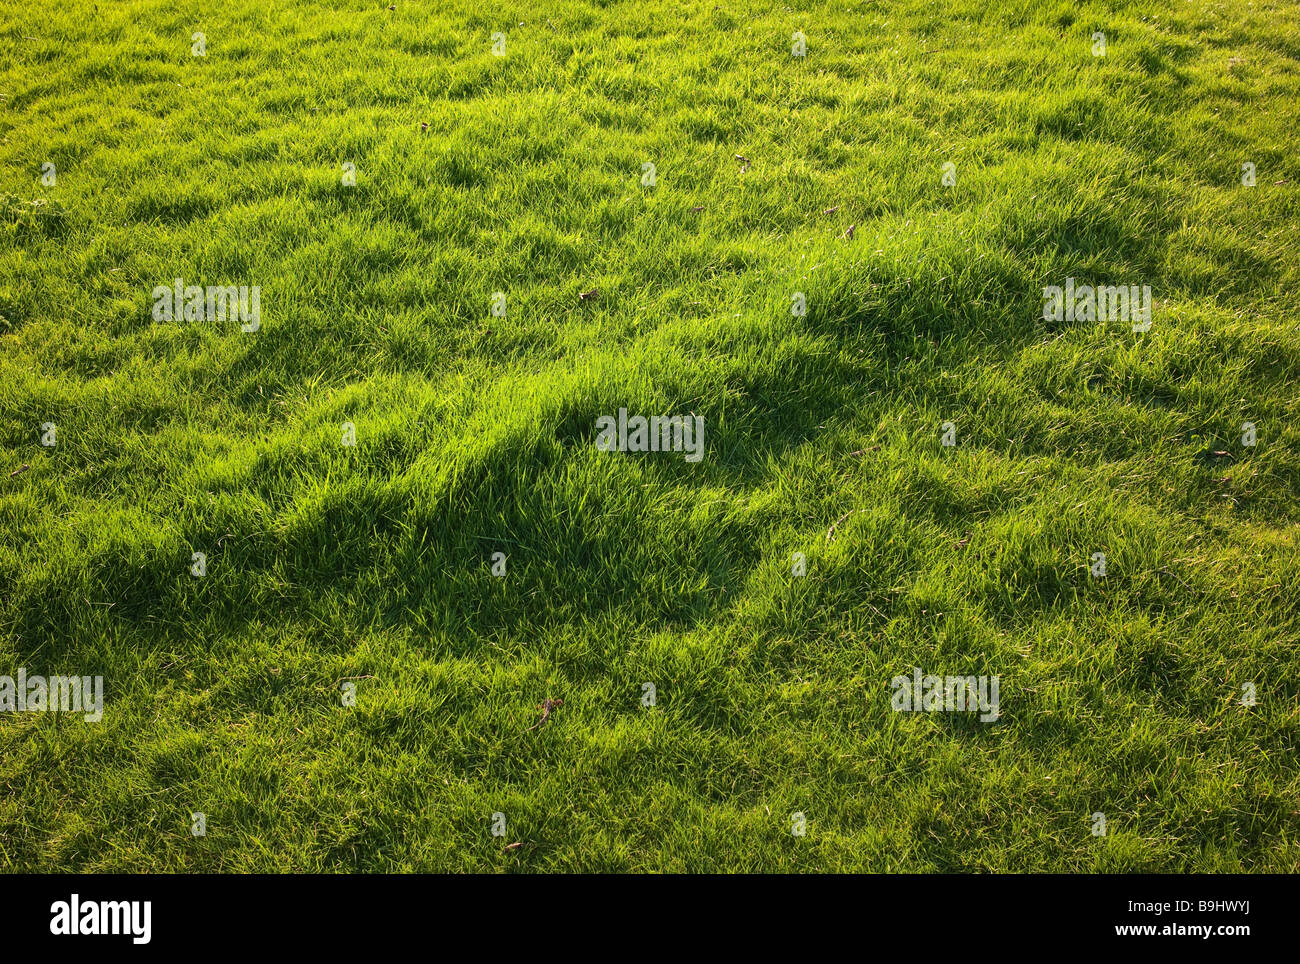 Lawn of grass showing evidence of mole burrowing just beneath the turf in March - Stock Image